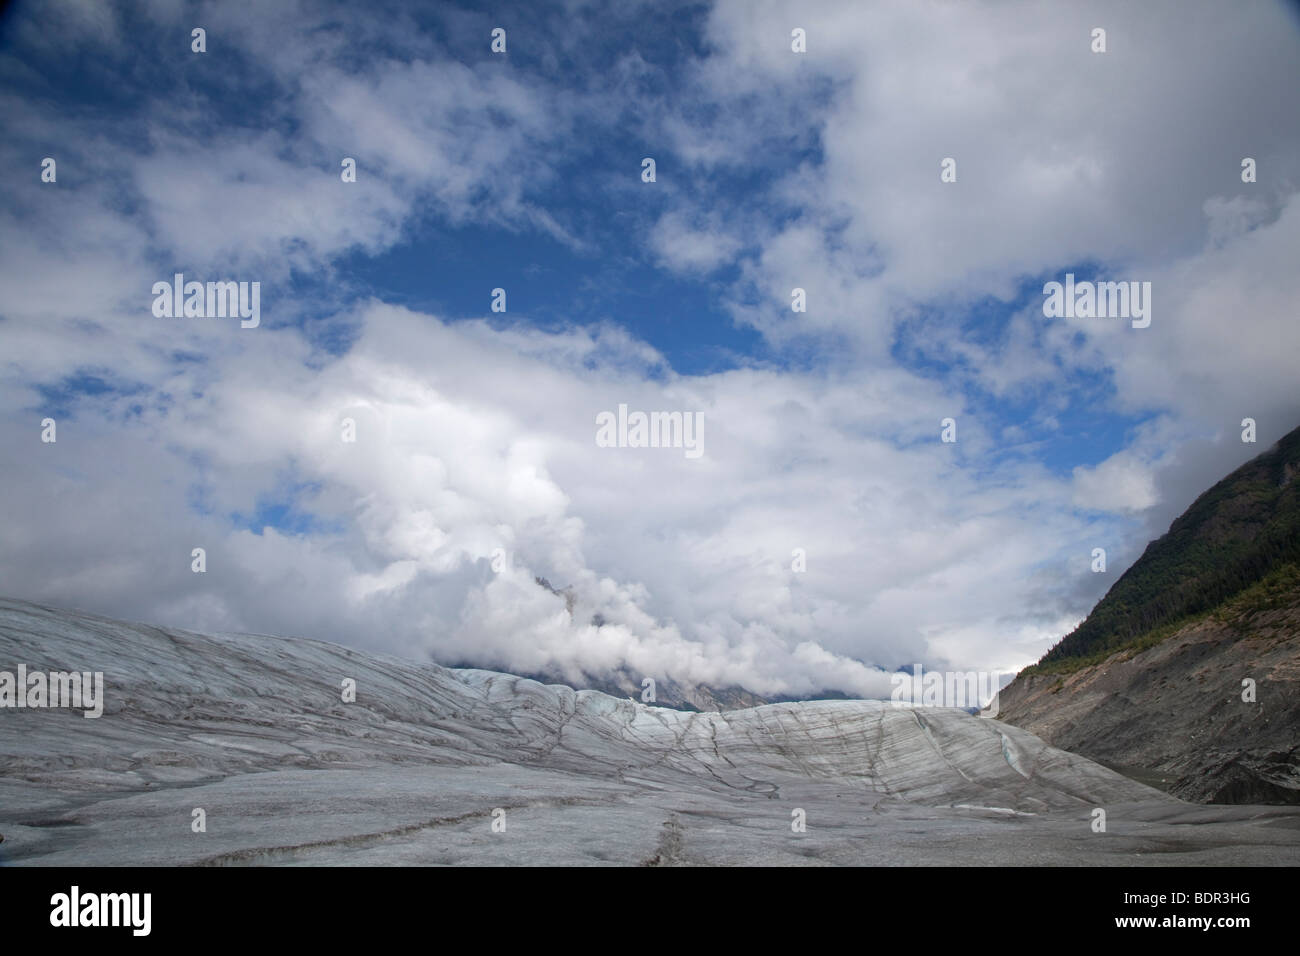 Kennicott, Alaska - The Root Glacier in Wrangell-St. Elias National Park. - Stock Image